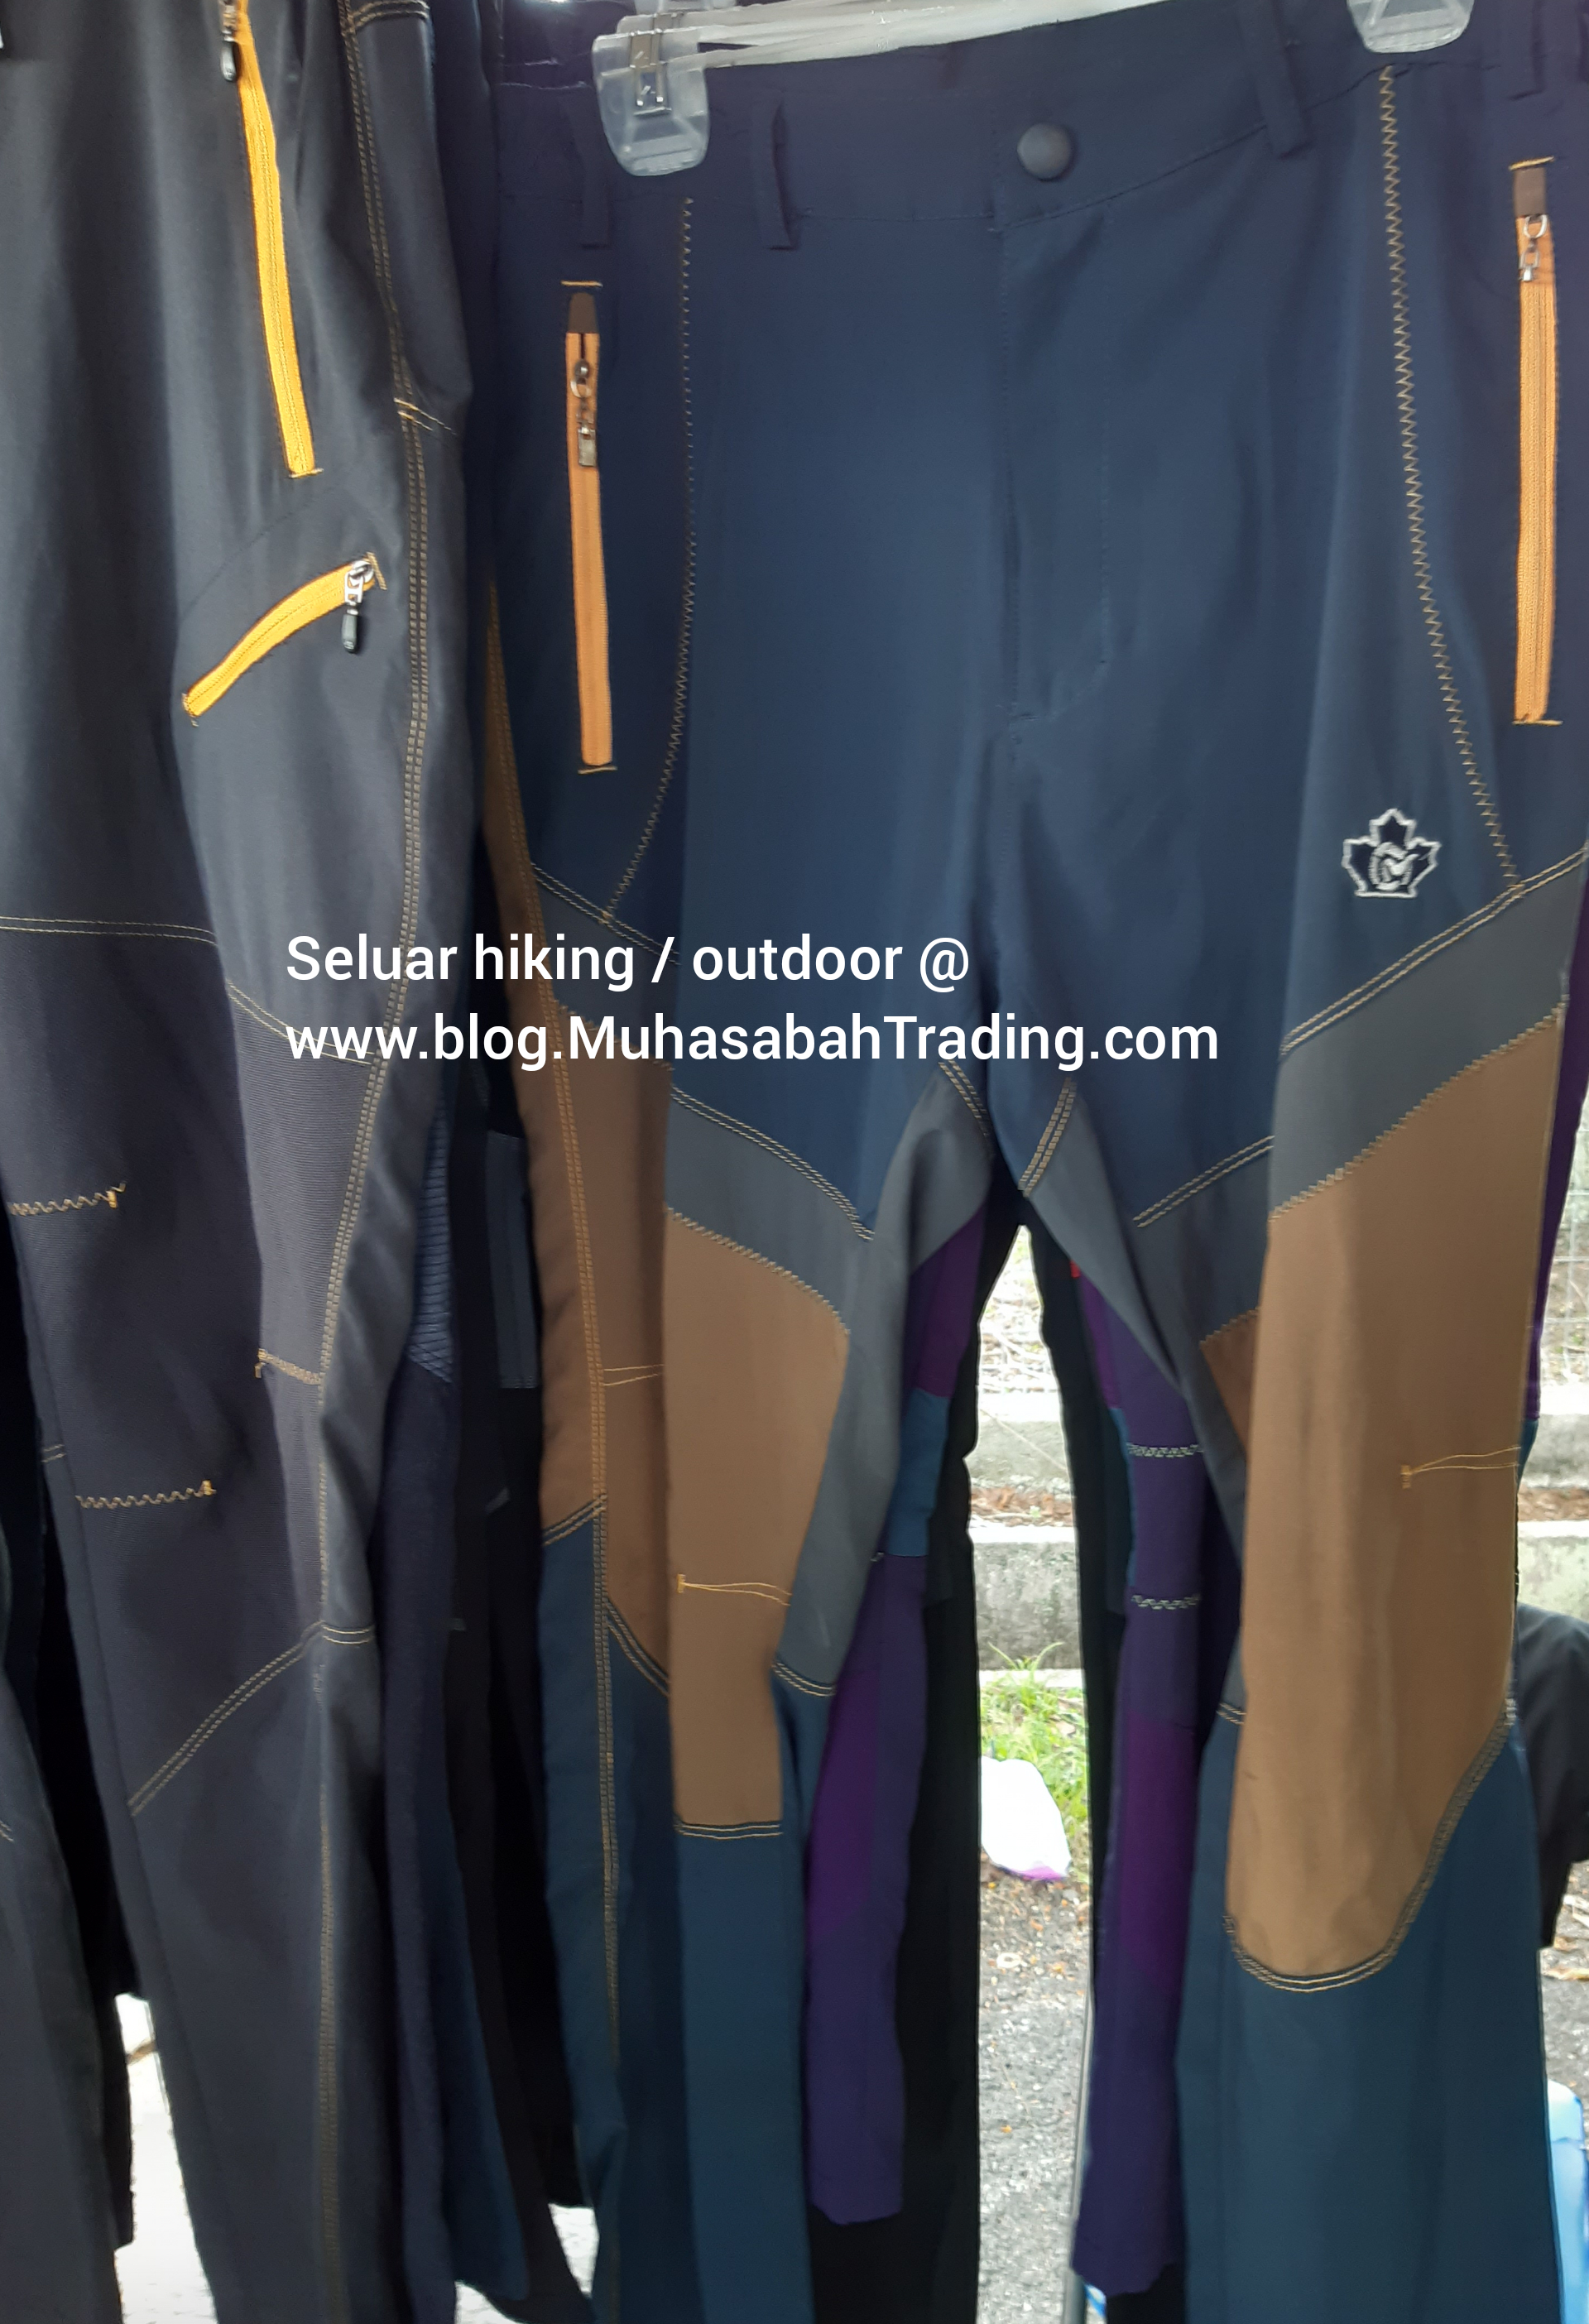 Seluar bundle hiking Muar outdoor parit sulong